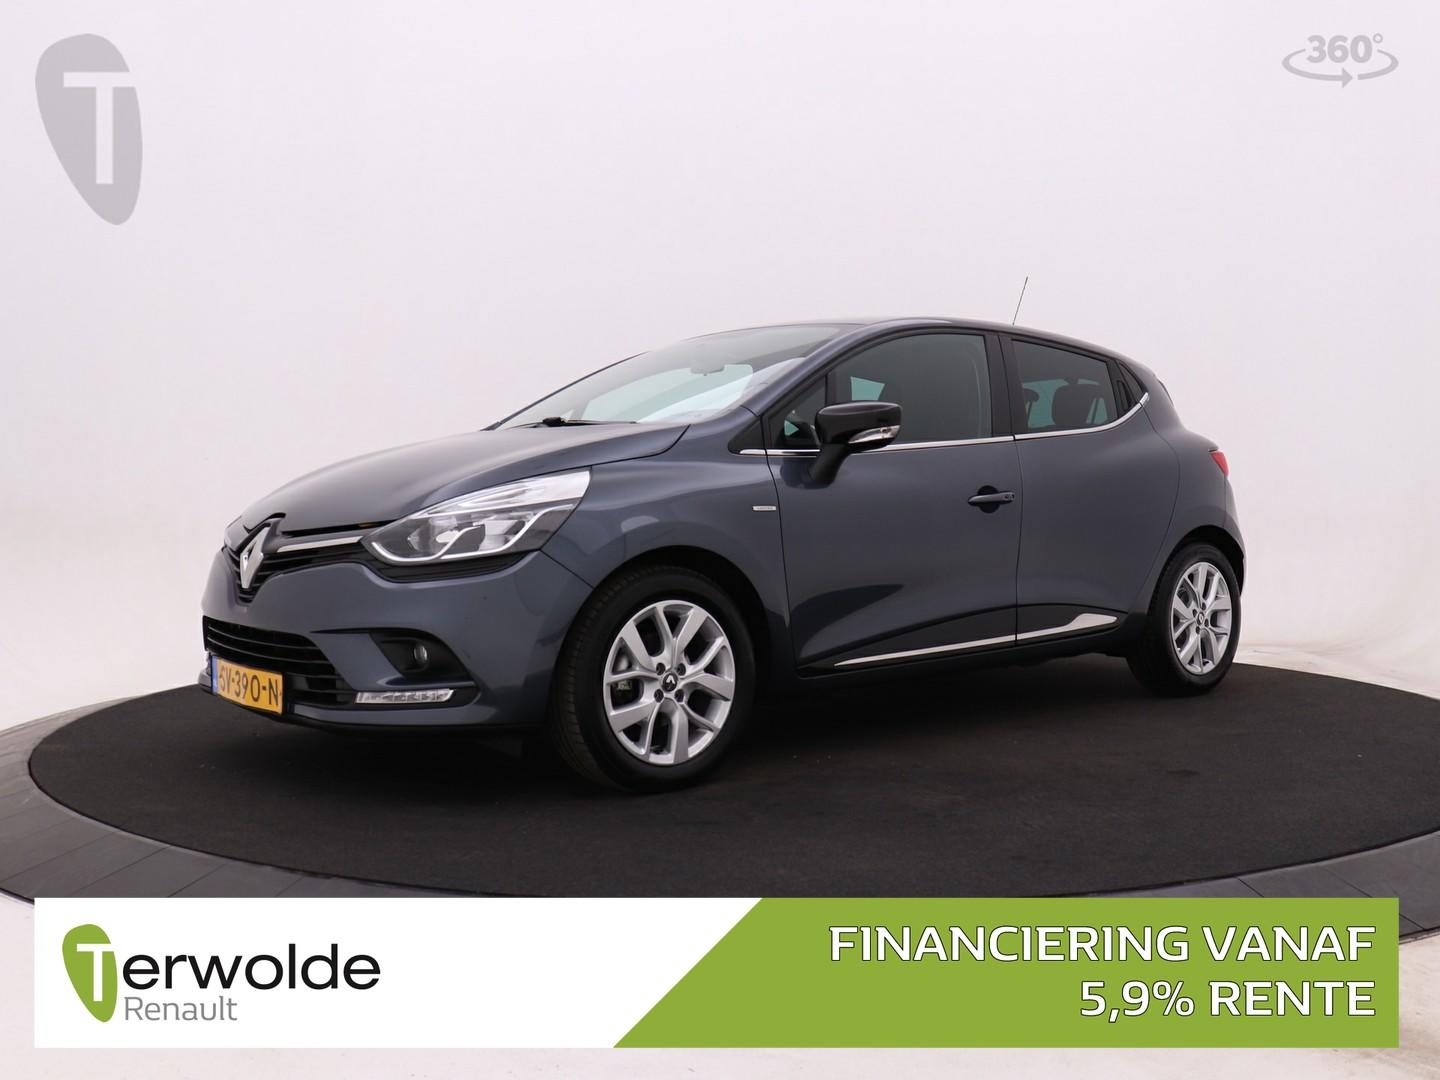 Renault Clio 0.9 tce 90 pk limited